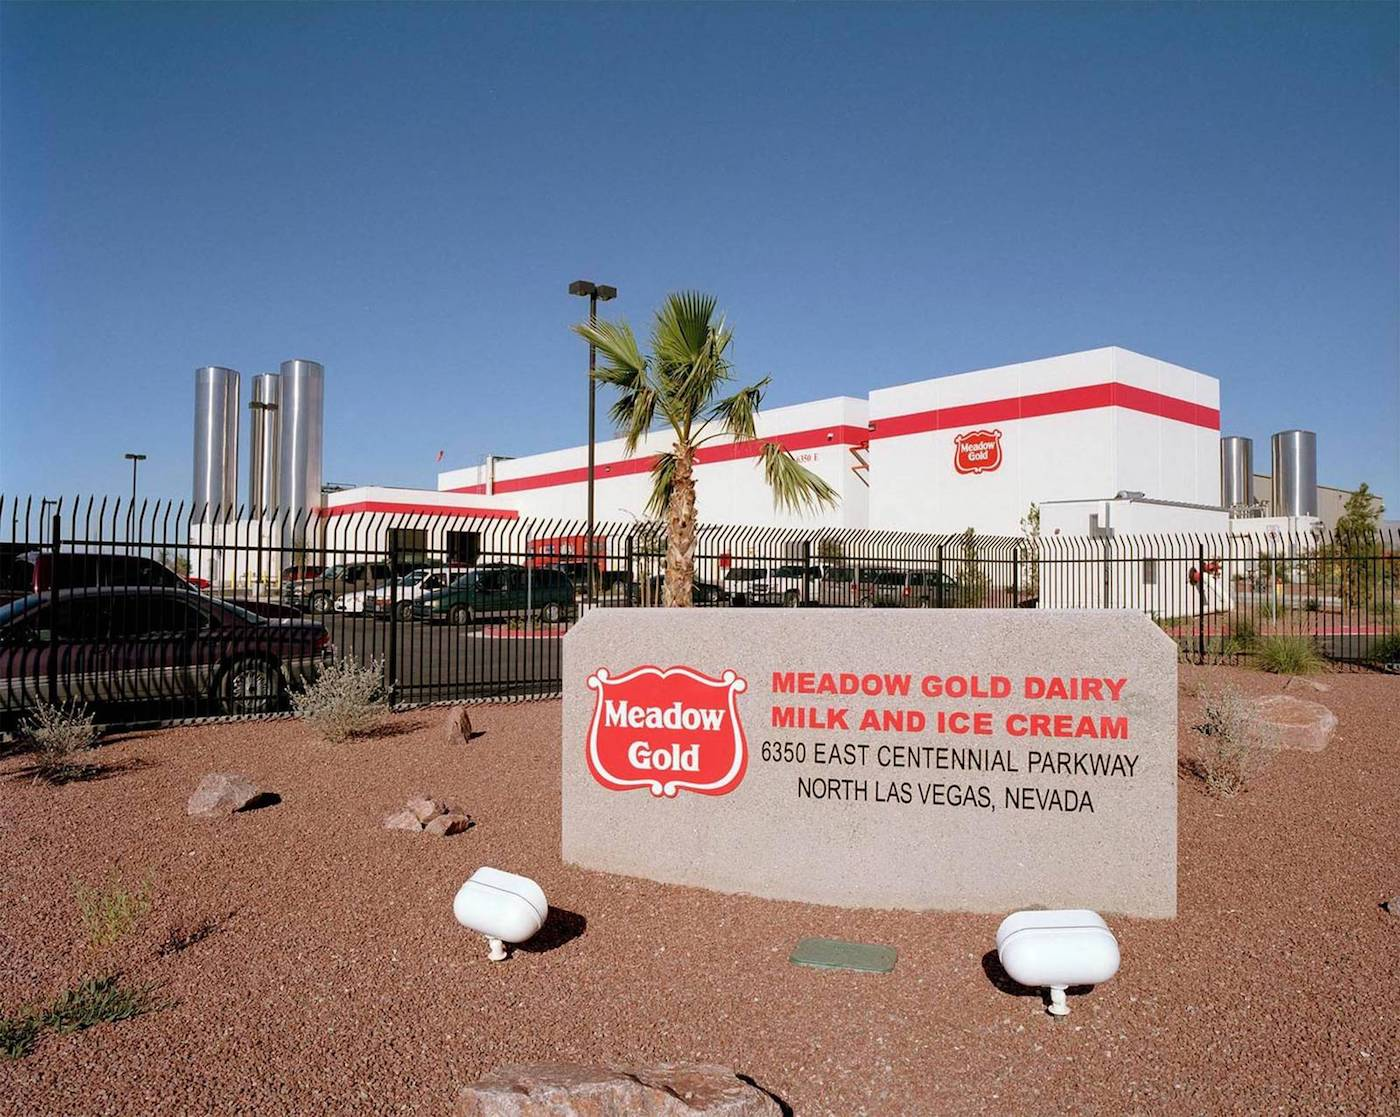 Meadow Gold Dairy Milk and Ice Cream Plant  BigD